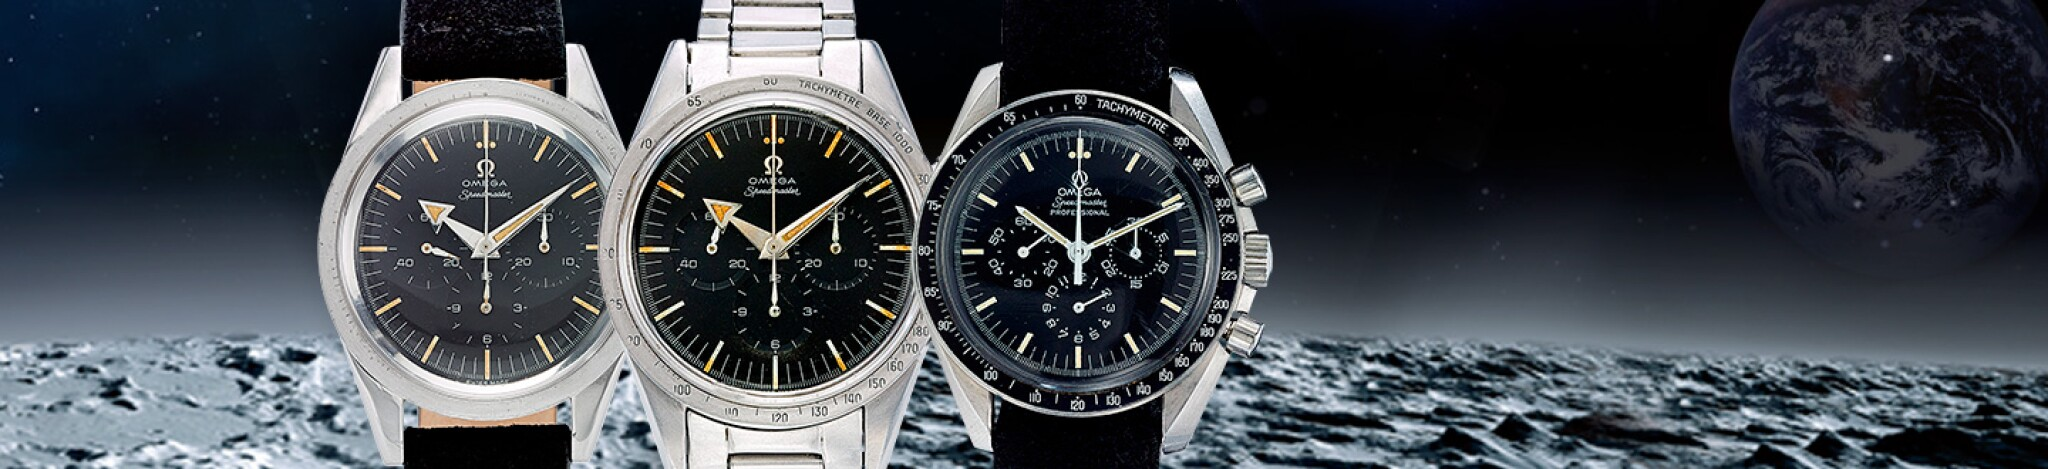 Omega Speedmaster: To the Moon and Back | Celebrating 50 years since Apollo 11